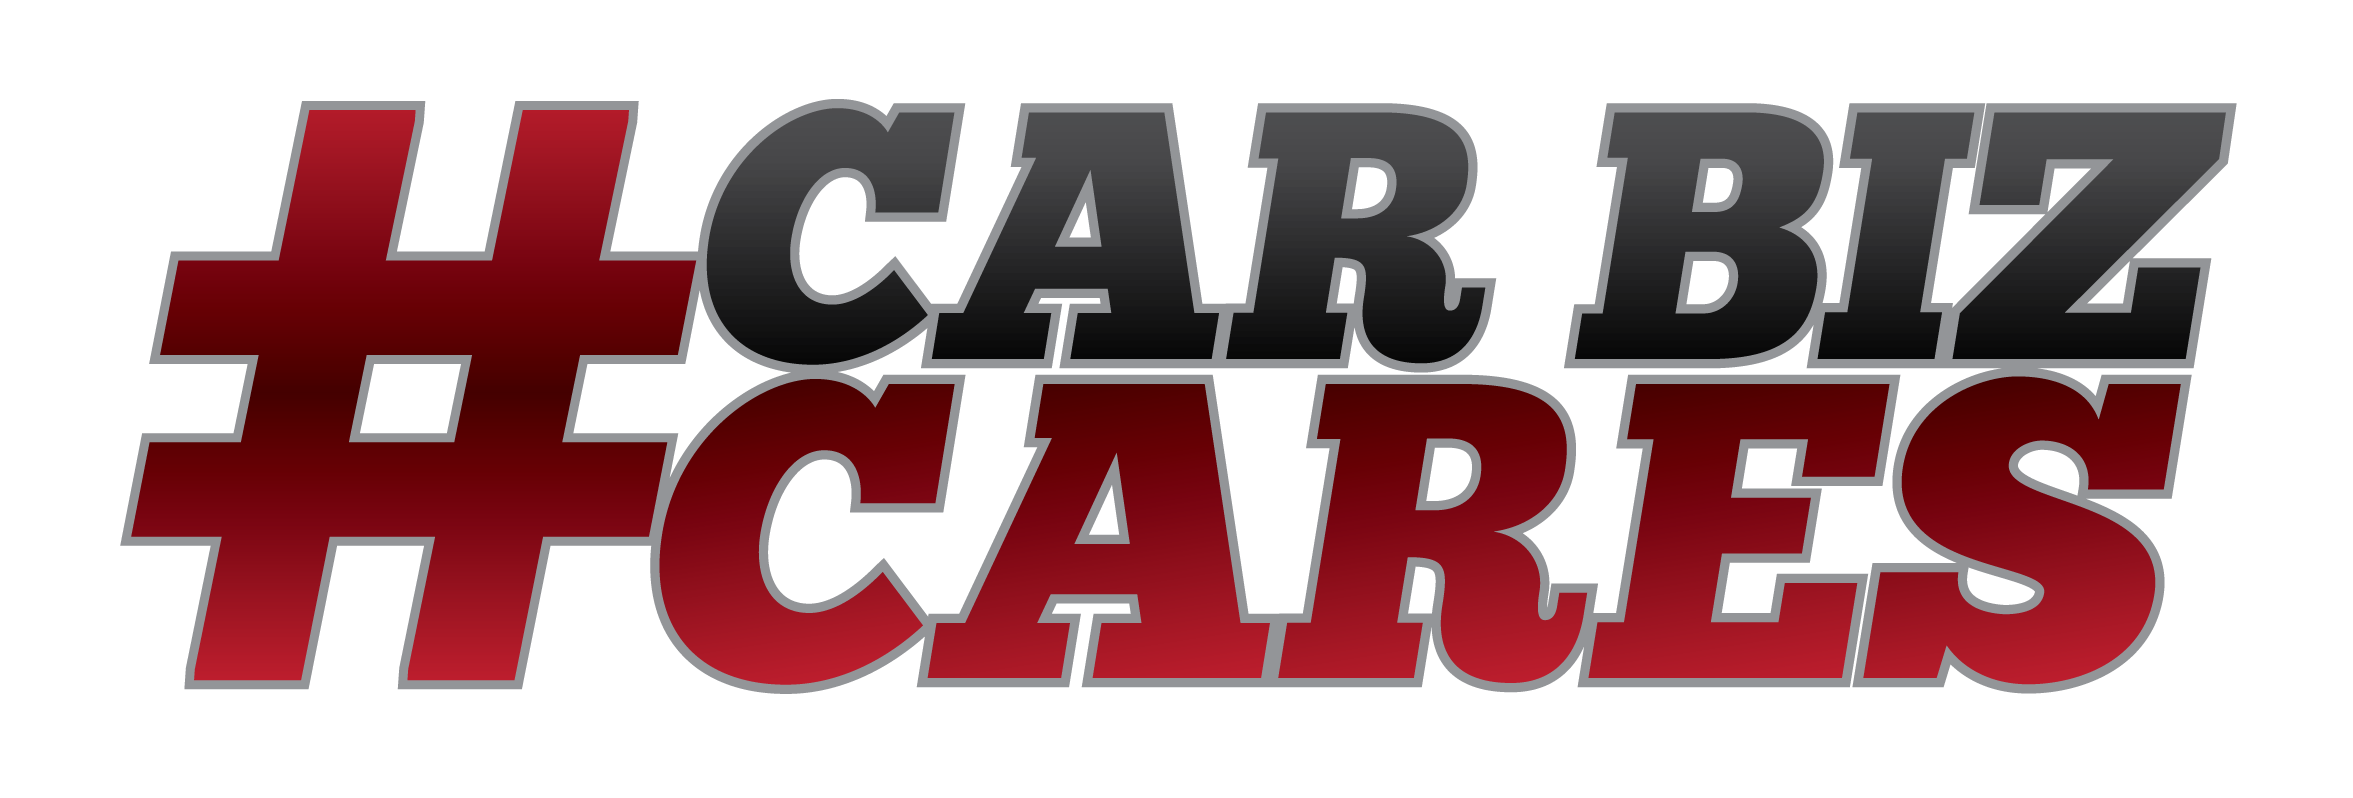 Car-Biz-Cares-Logo-Design-Hashtag2